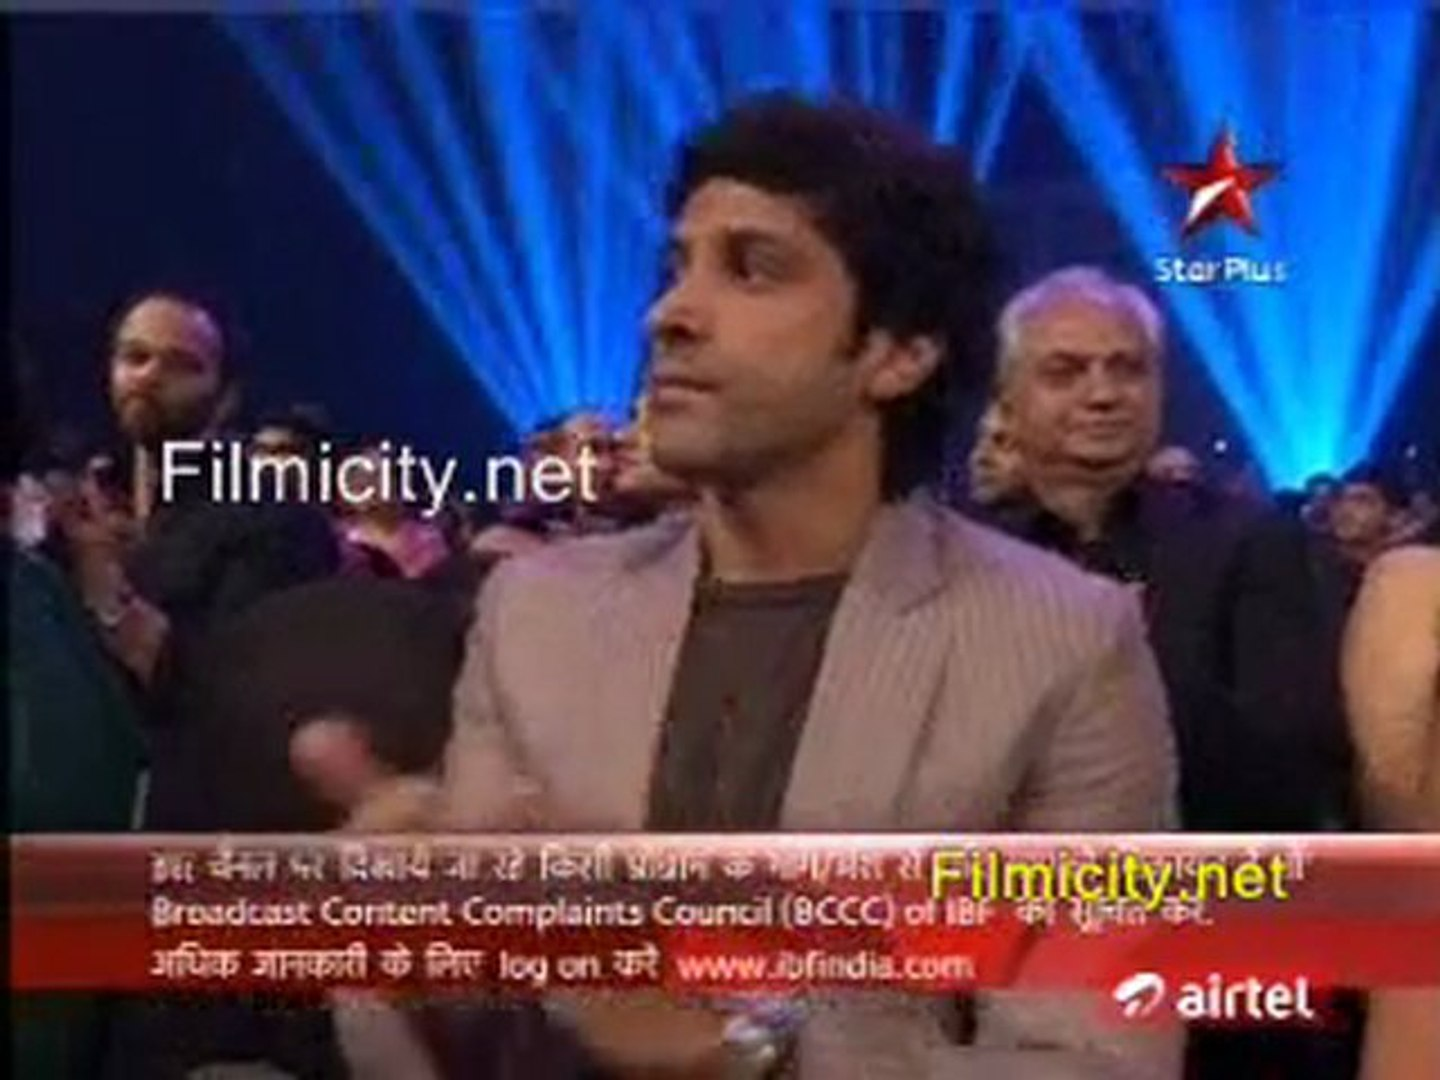 Airtel Super Star Awards 2011 - 27th November 2011 Video Watch - pt9